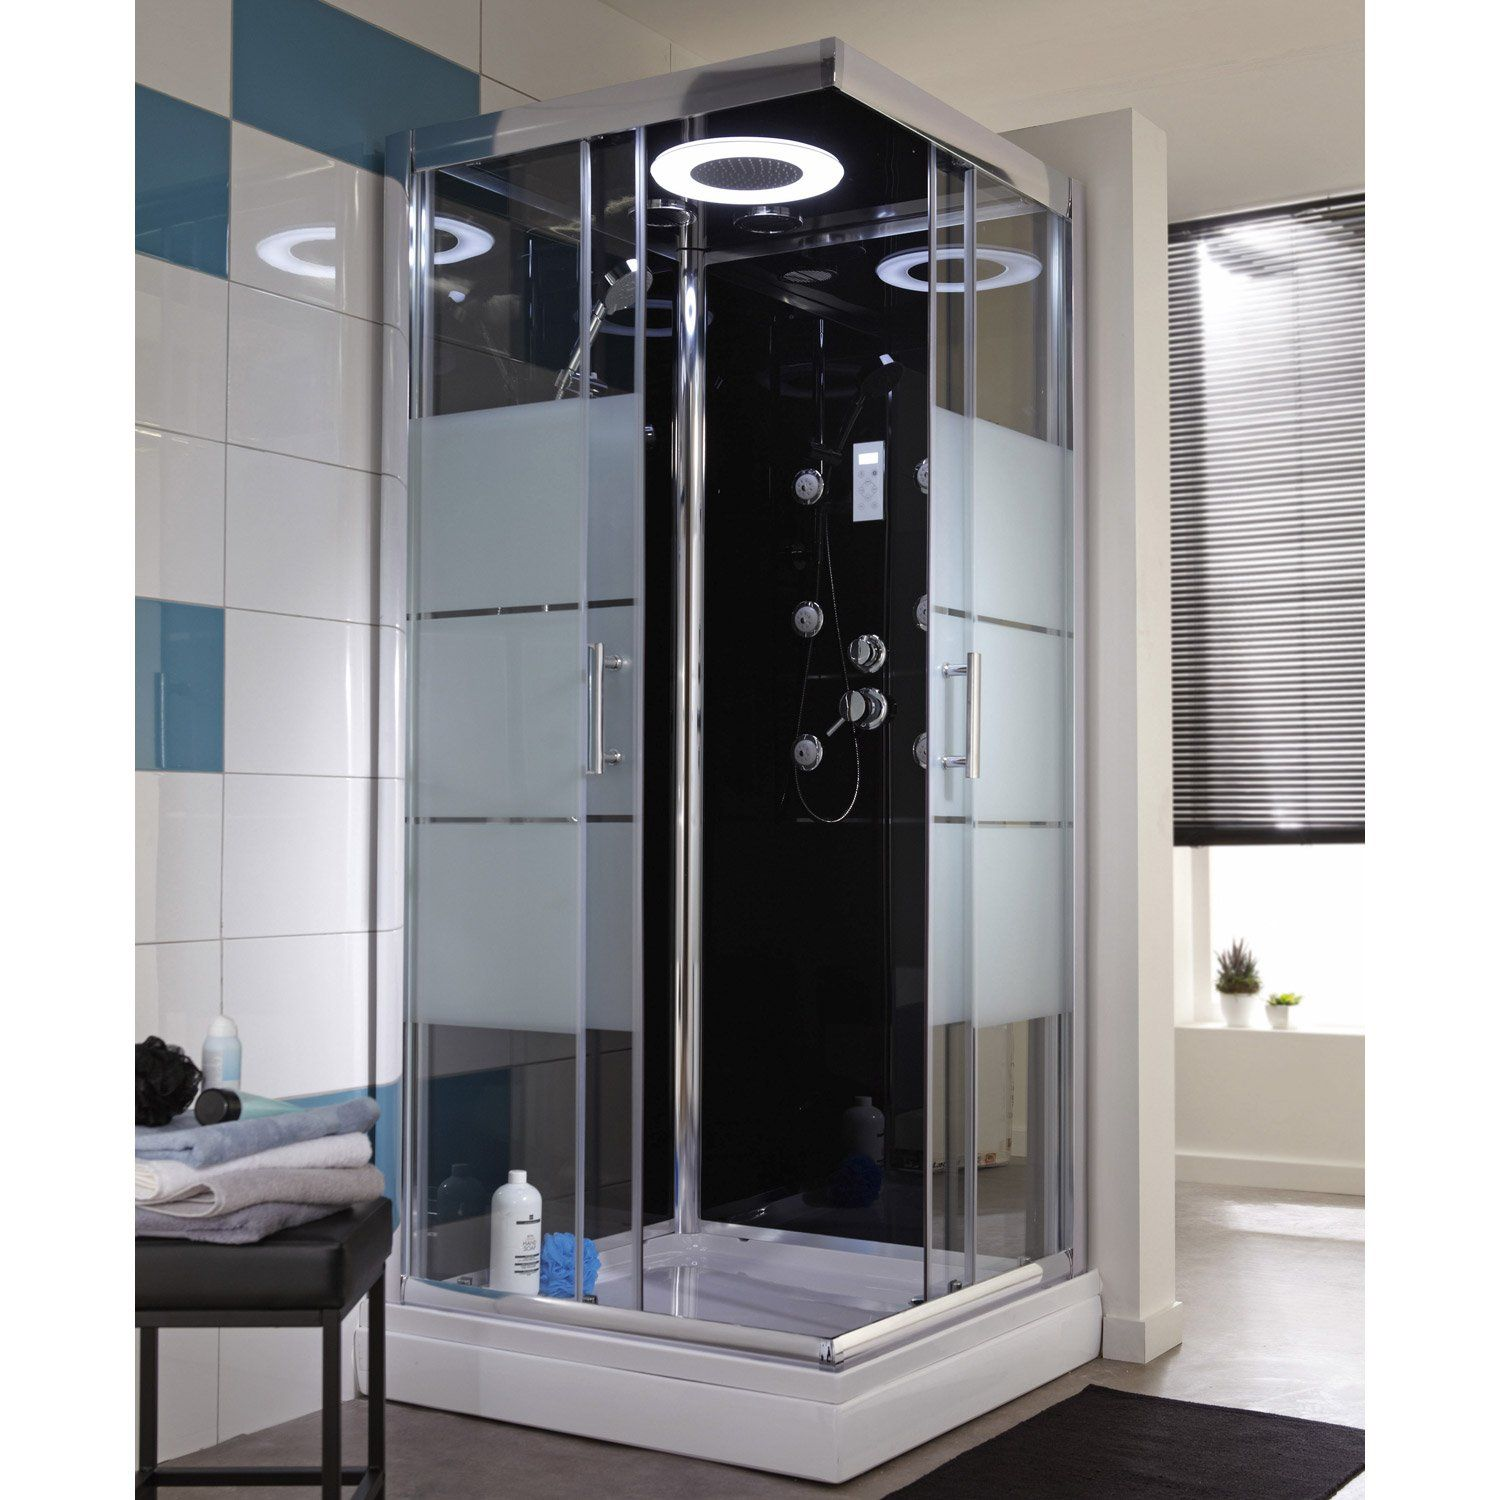 cabine de douche leroy merlin promo cabine de douche carr 90x90 cm optima2 noire prix promo. Black Bedroom Furniture Sets. Home Design Ideas